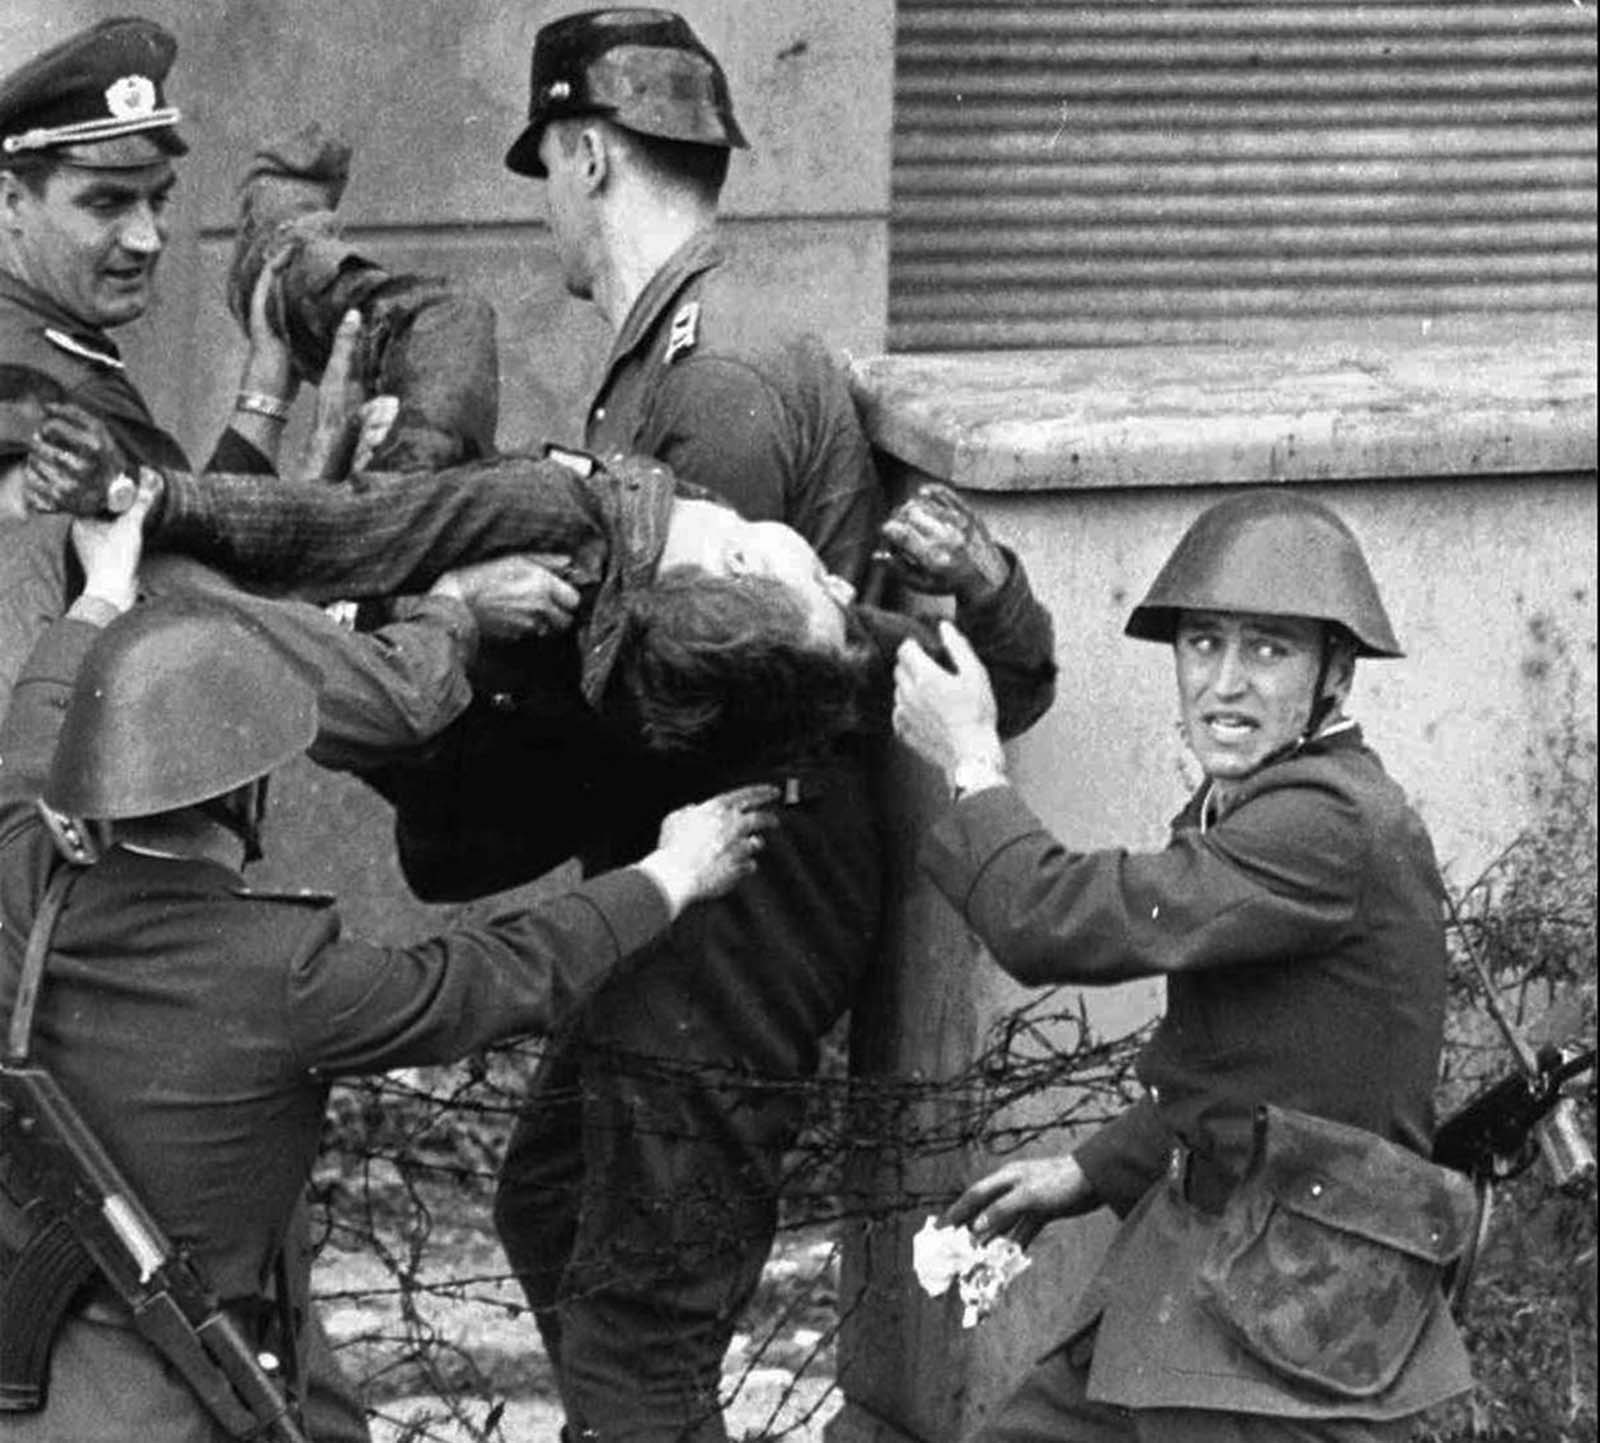 A dying Peter Fechter is carried away by East German border guards who shot him down when he tried to flee to the West in this August 17, 1962, photo. Fechter was lying in no-man's-land for 50 minutes before he was taken to a hospital, where he died shortly after his arrival.